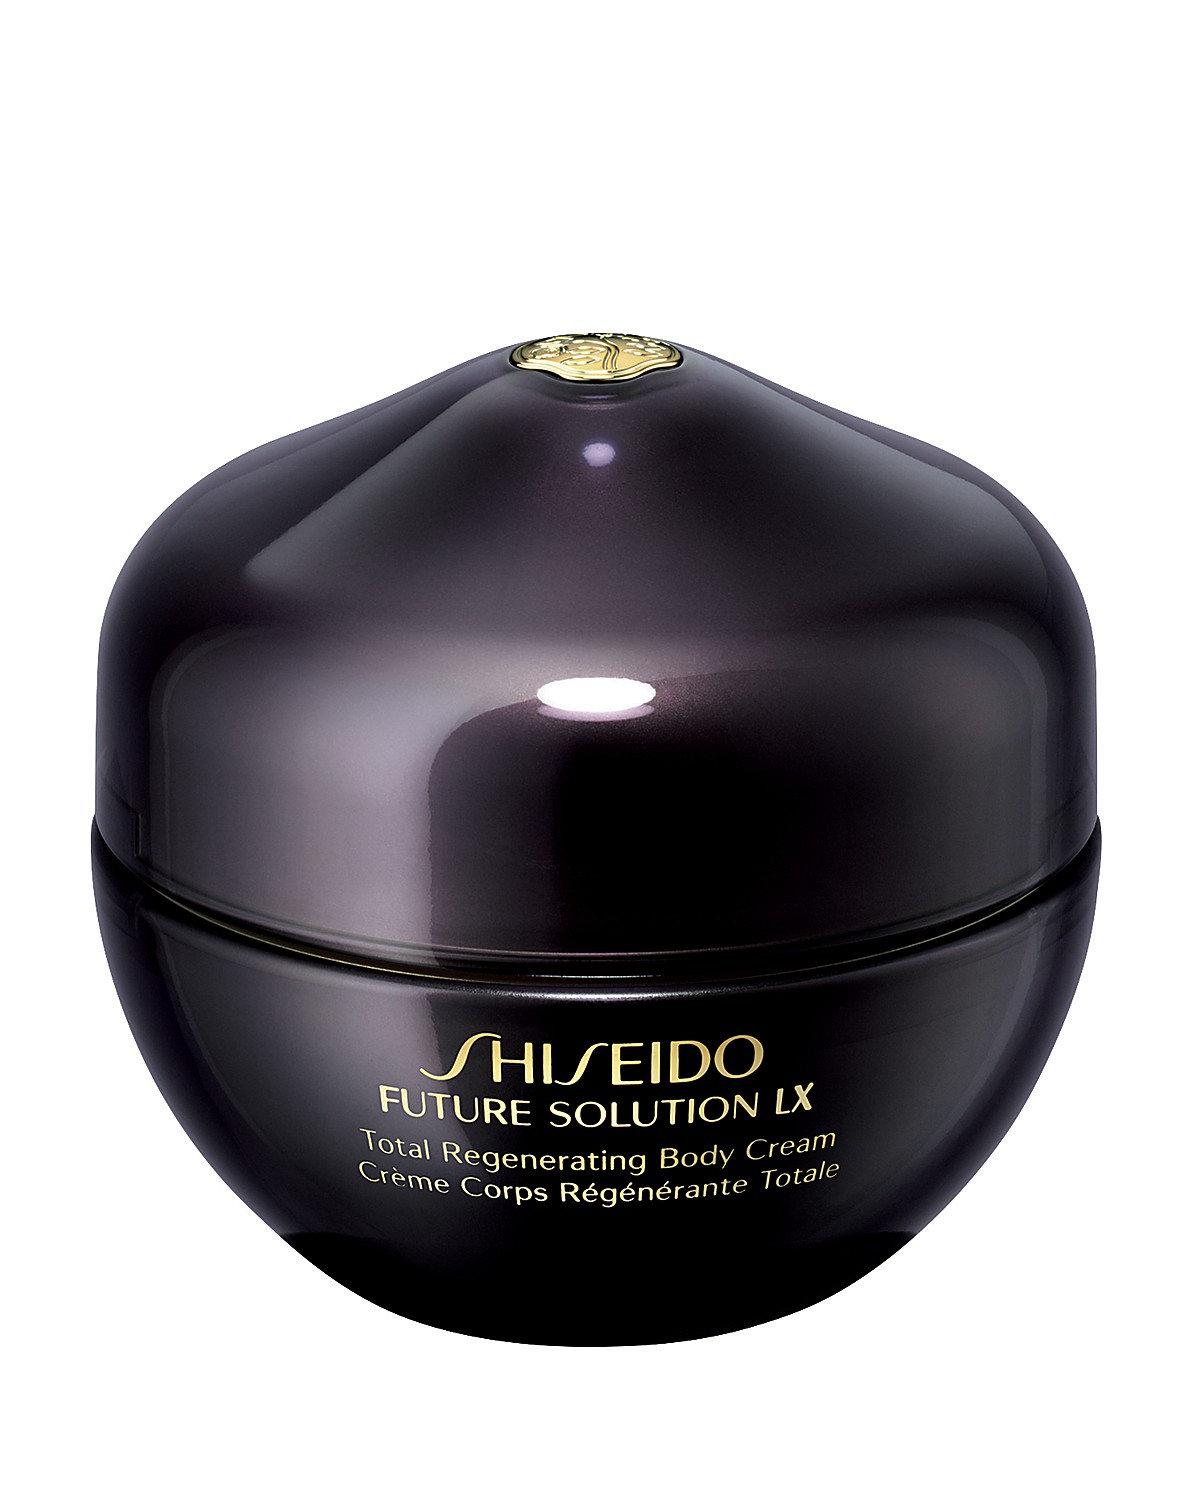 SHISEIDO FUTURE SOLUTION LX REGENERATION CREAM